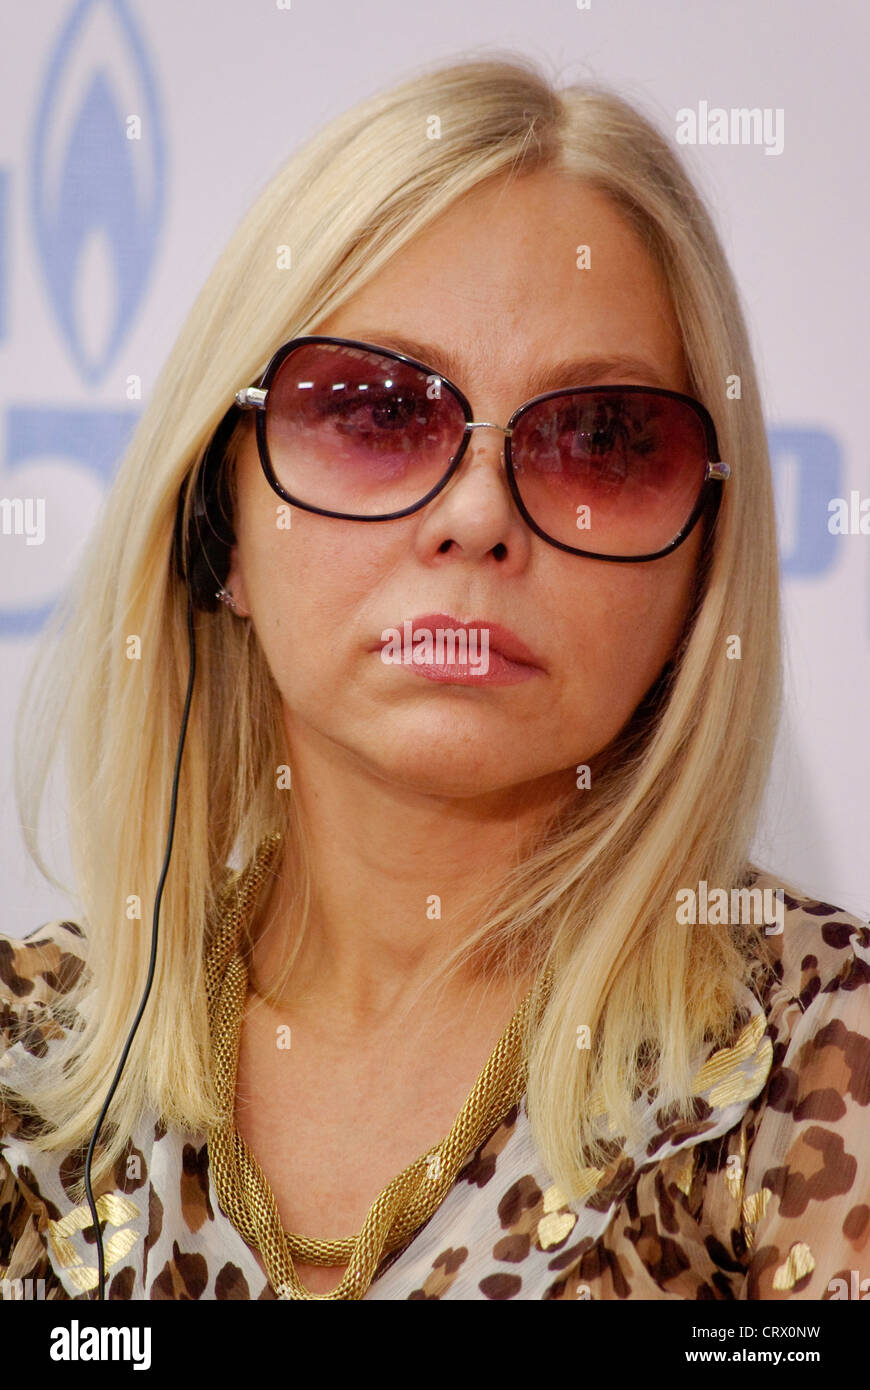 Russia. St. Petersburg International Film Forum. The actress Ornella Muti. Stock Photo